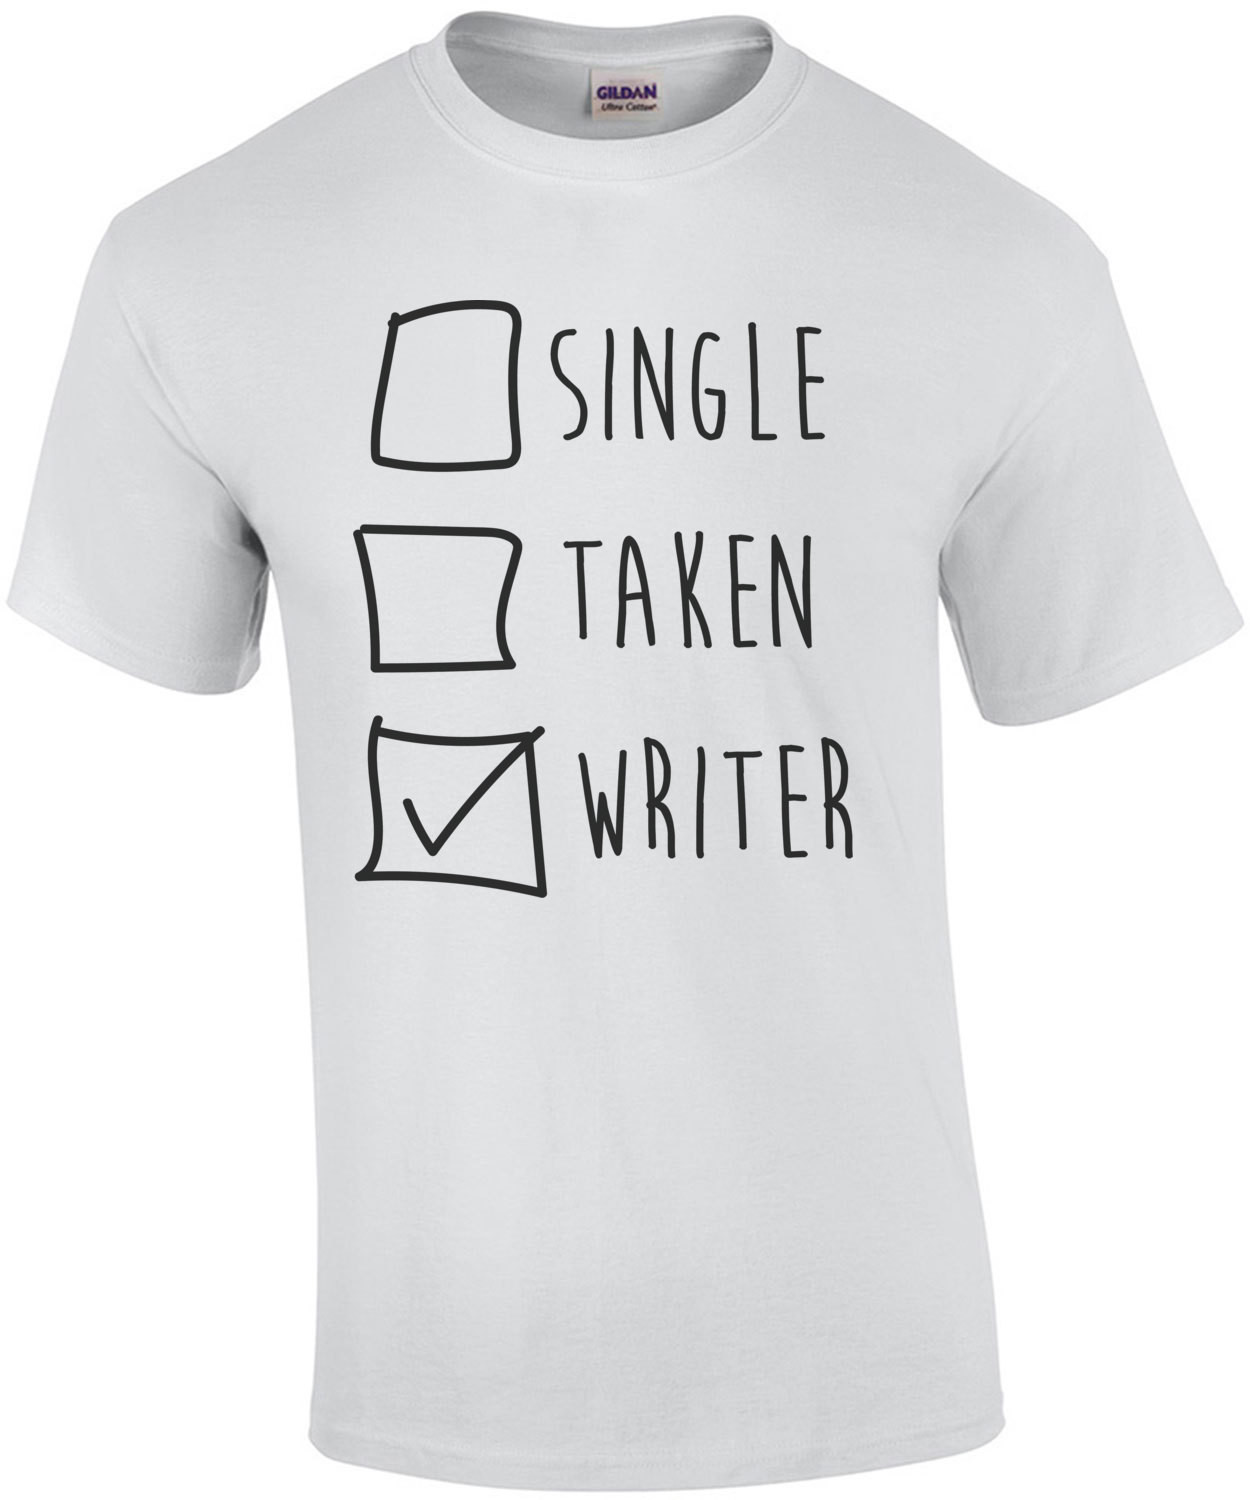 Single Taken Writer - Funny Writer T-Shirt